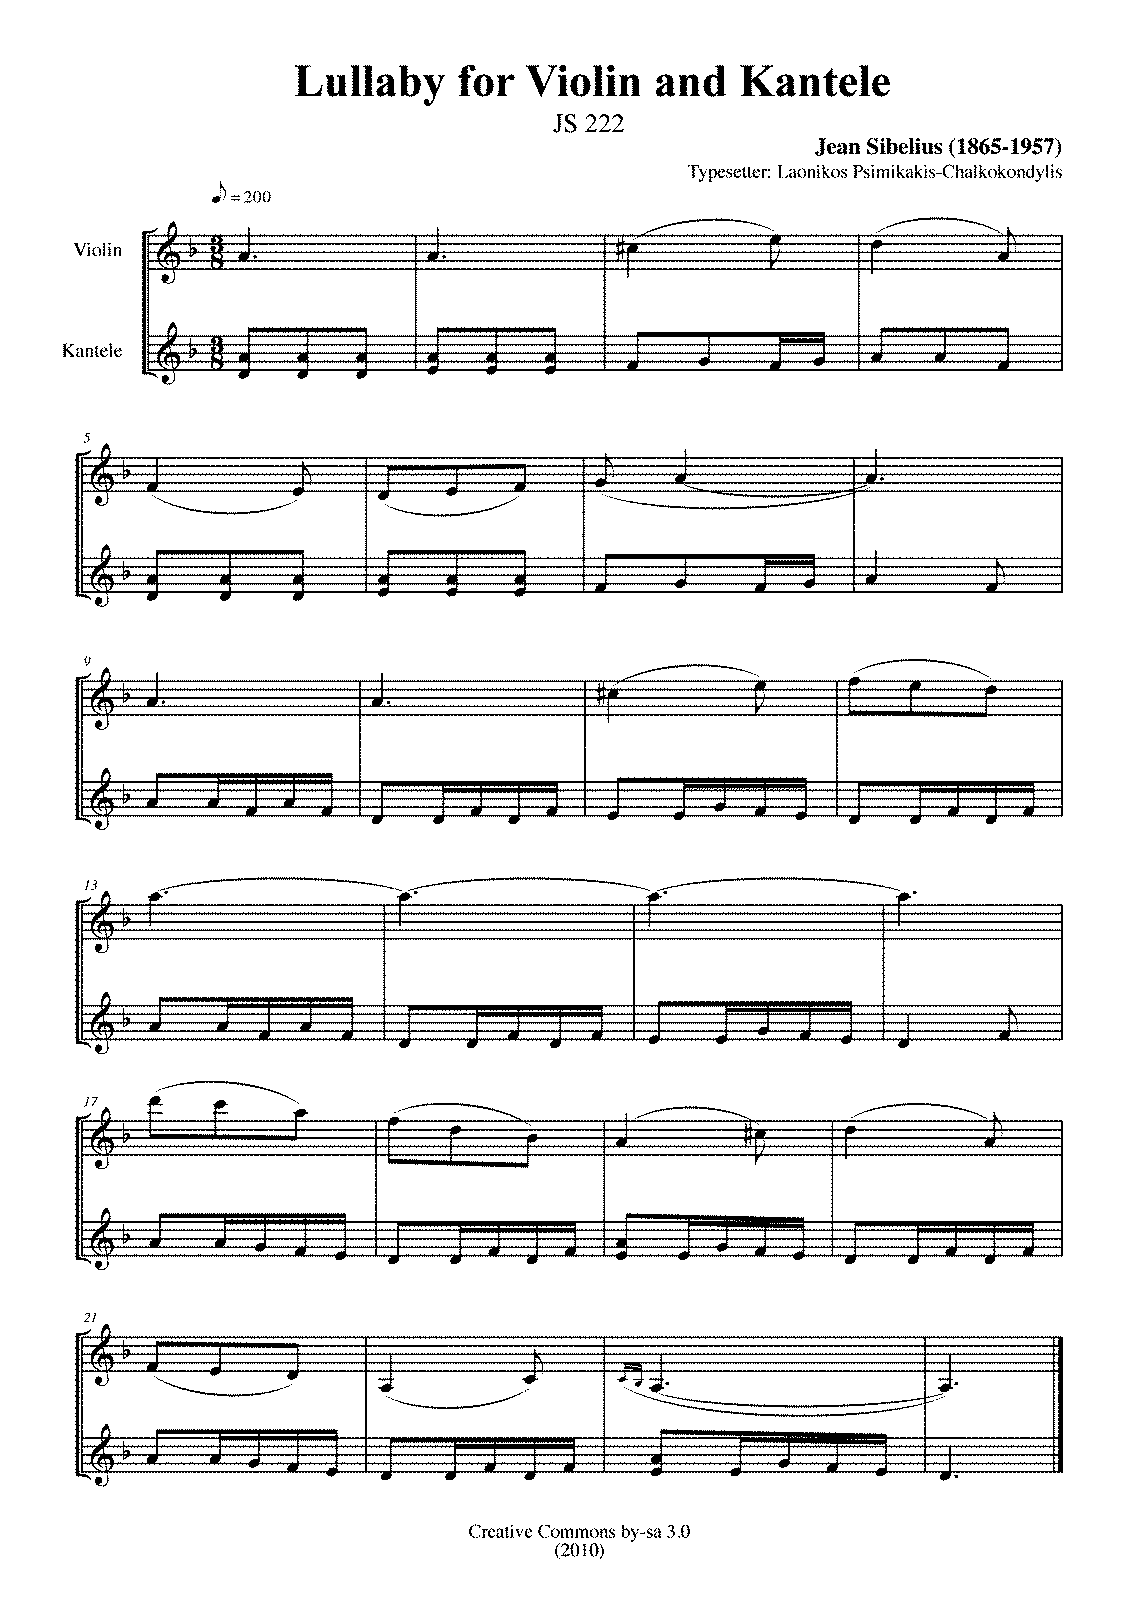 PMLP122624-Sibelius - Lullaby for Violin and Kantele (typeset).pdf